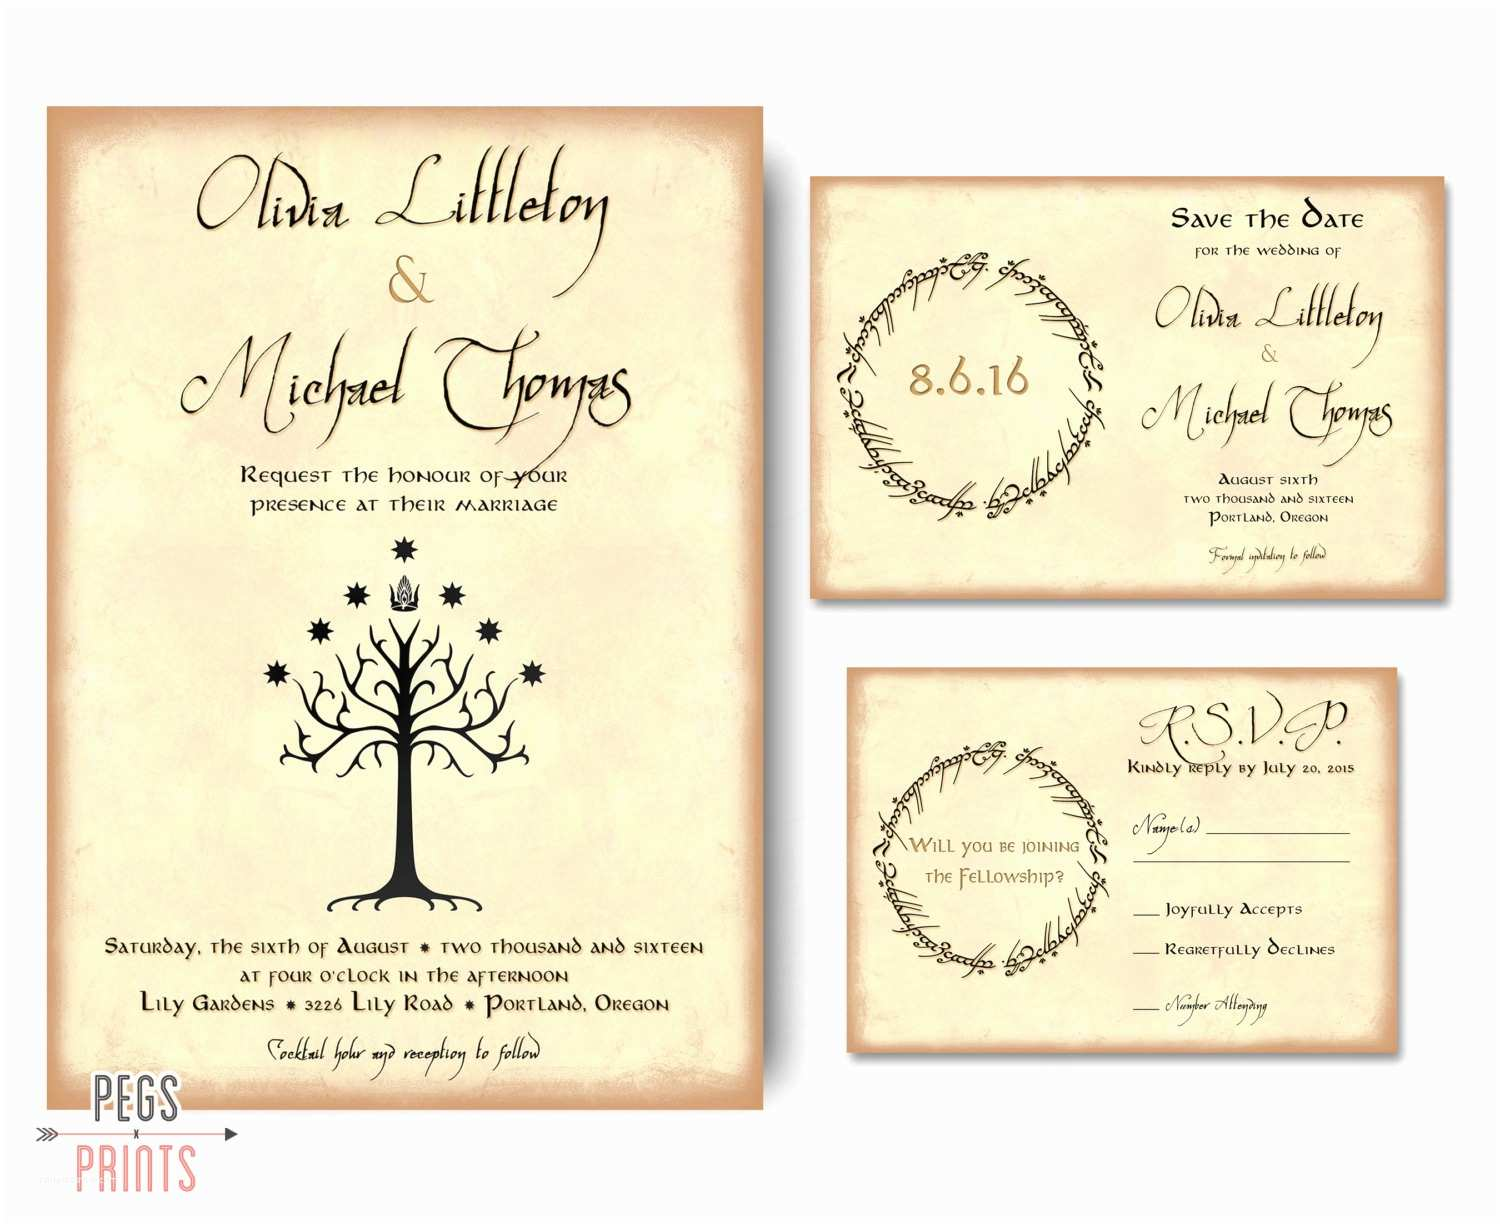 Ring In the New Year Wedding Invite Geek Wedding Invitation Set Lord Of the Rings Wedding